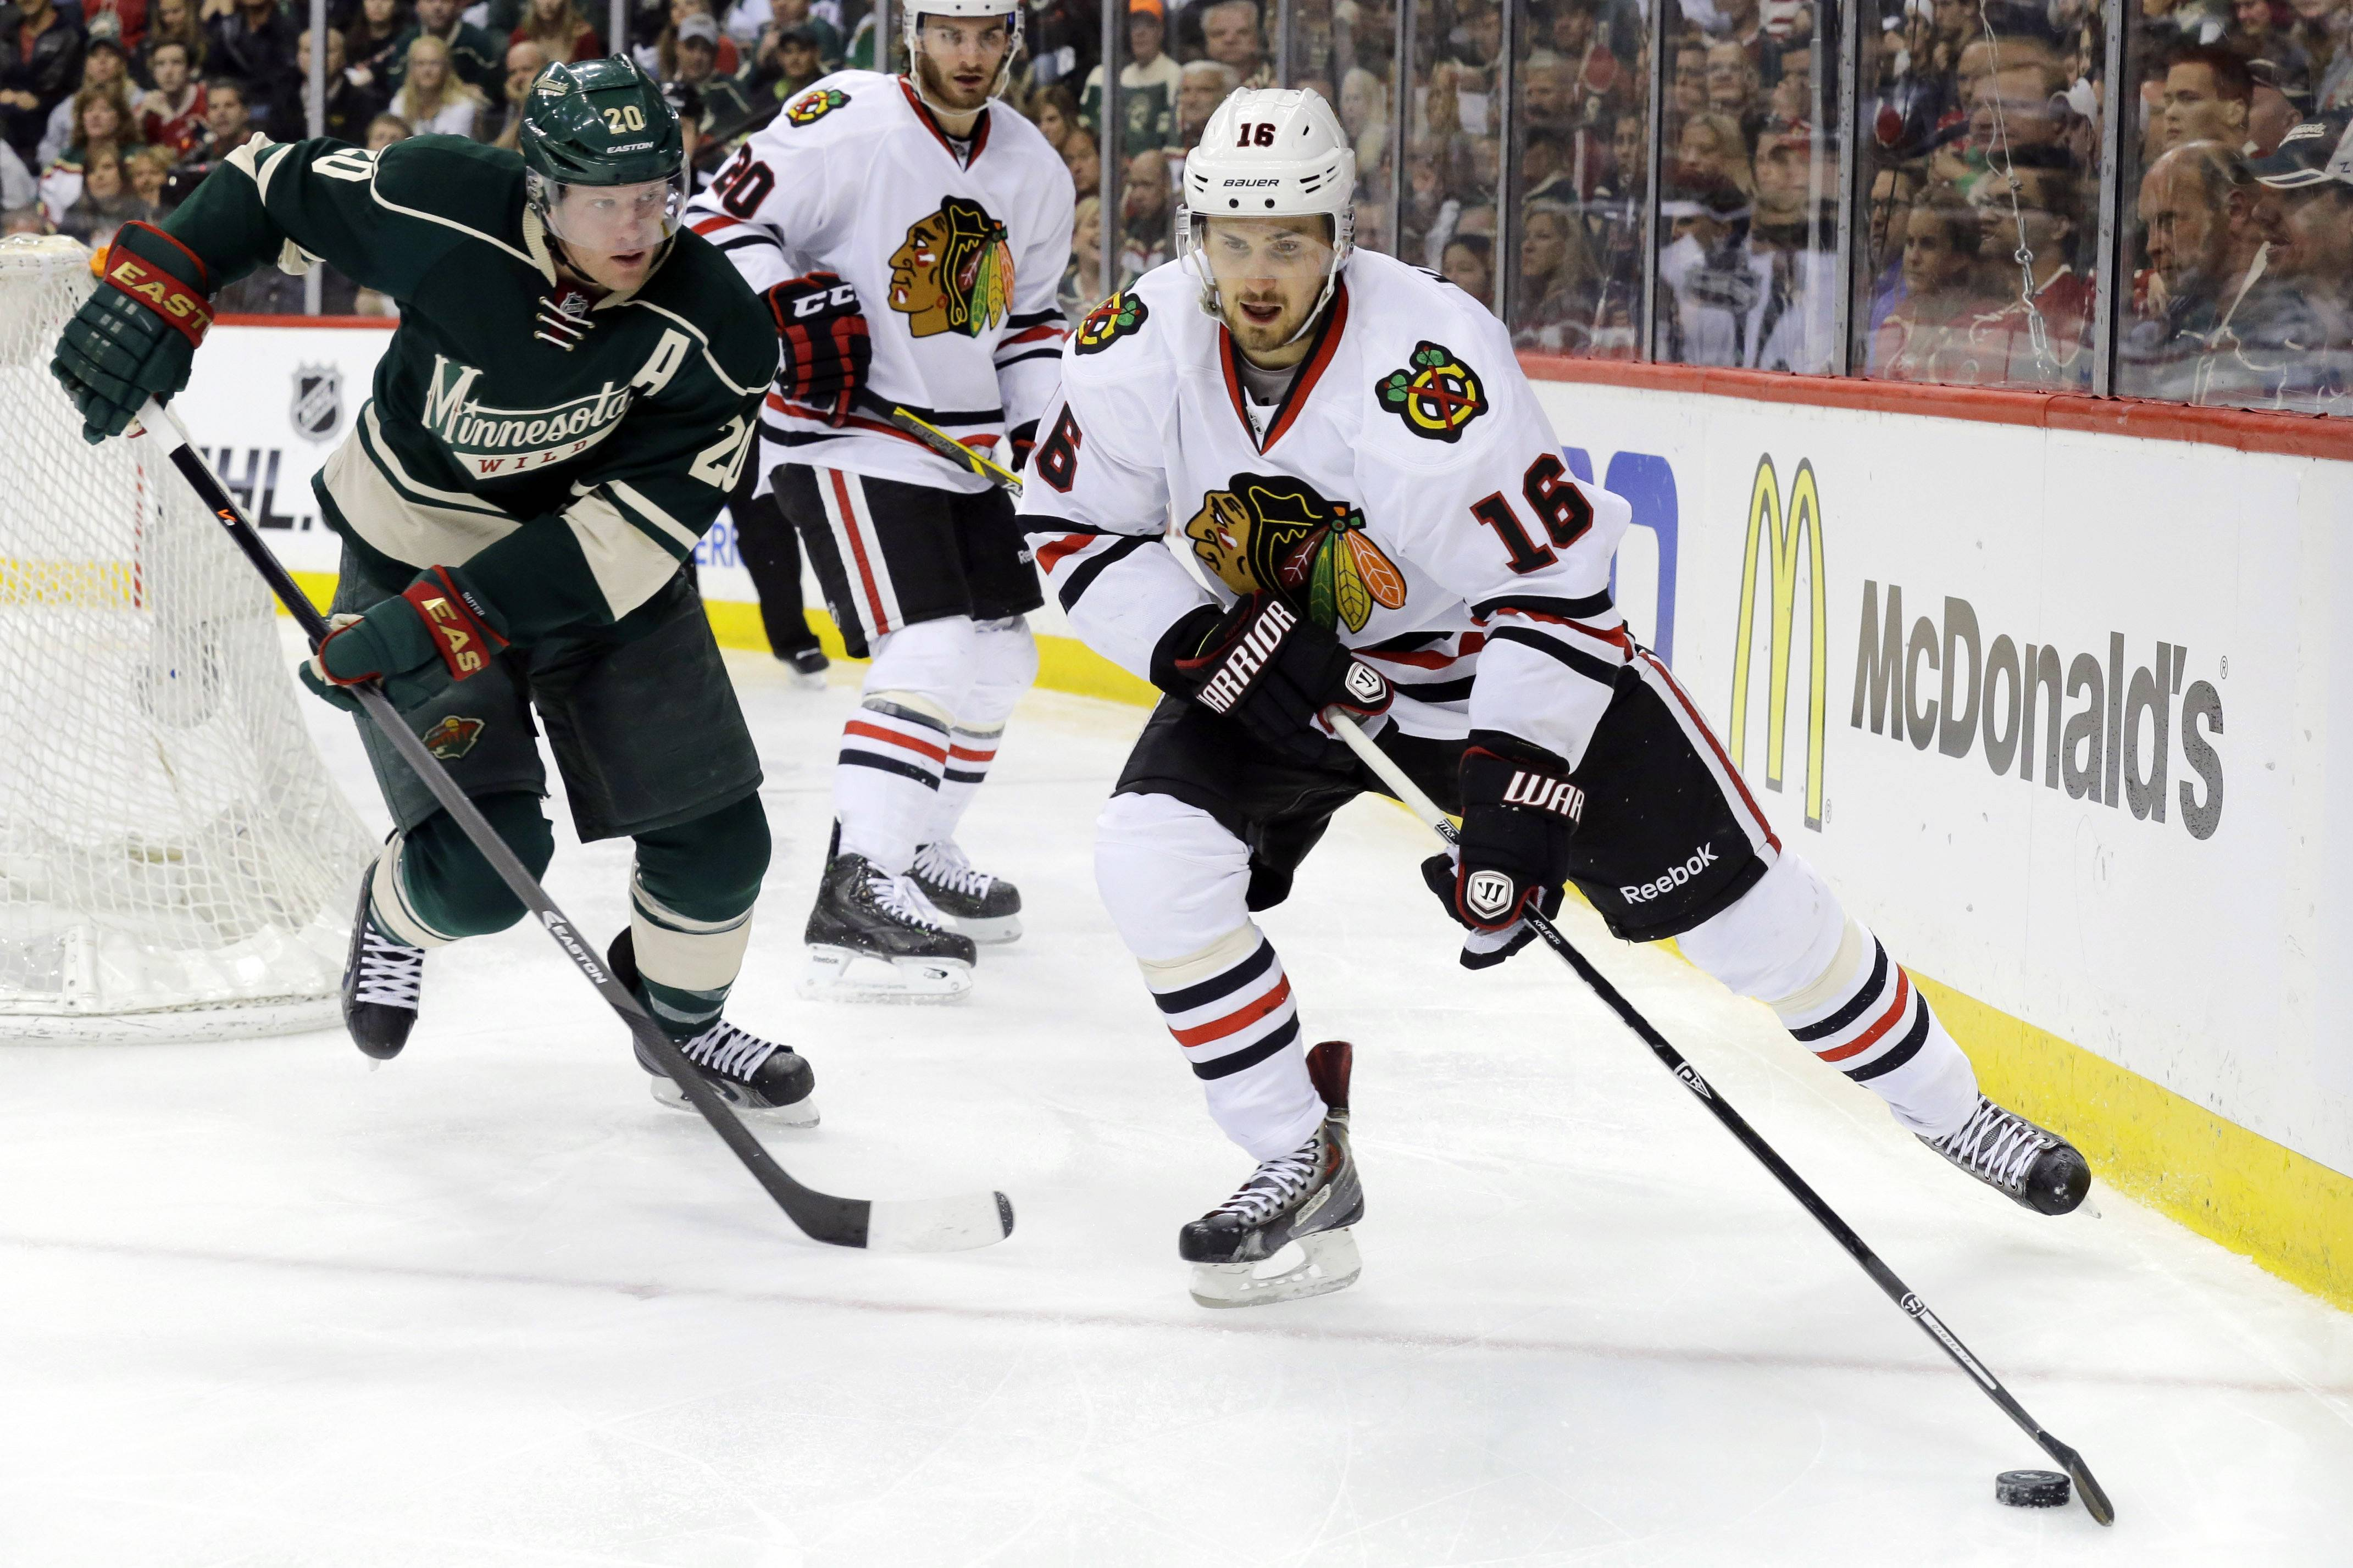 Chicago Blackhawks center Marcus Kruger (16) controls the puck in front of Minnesota Wild defenseman Ryan Suter (20) during the second period.